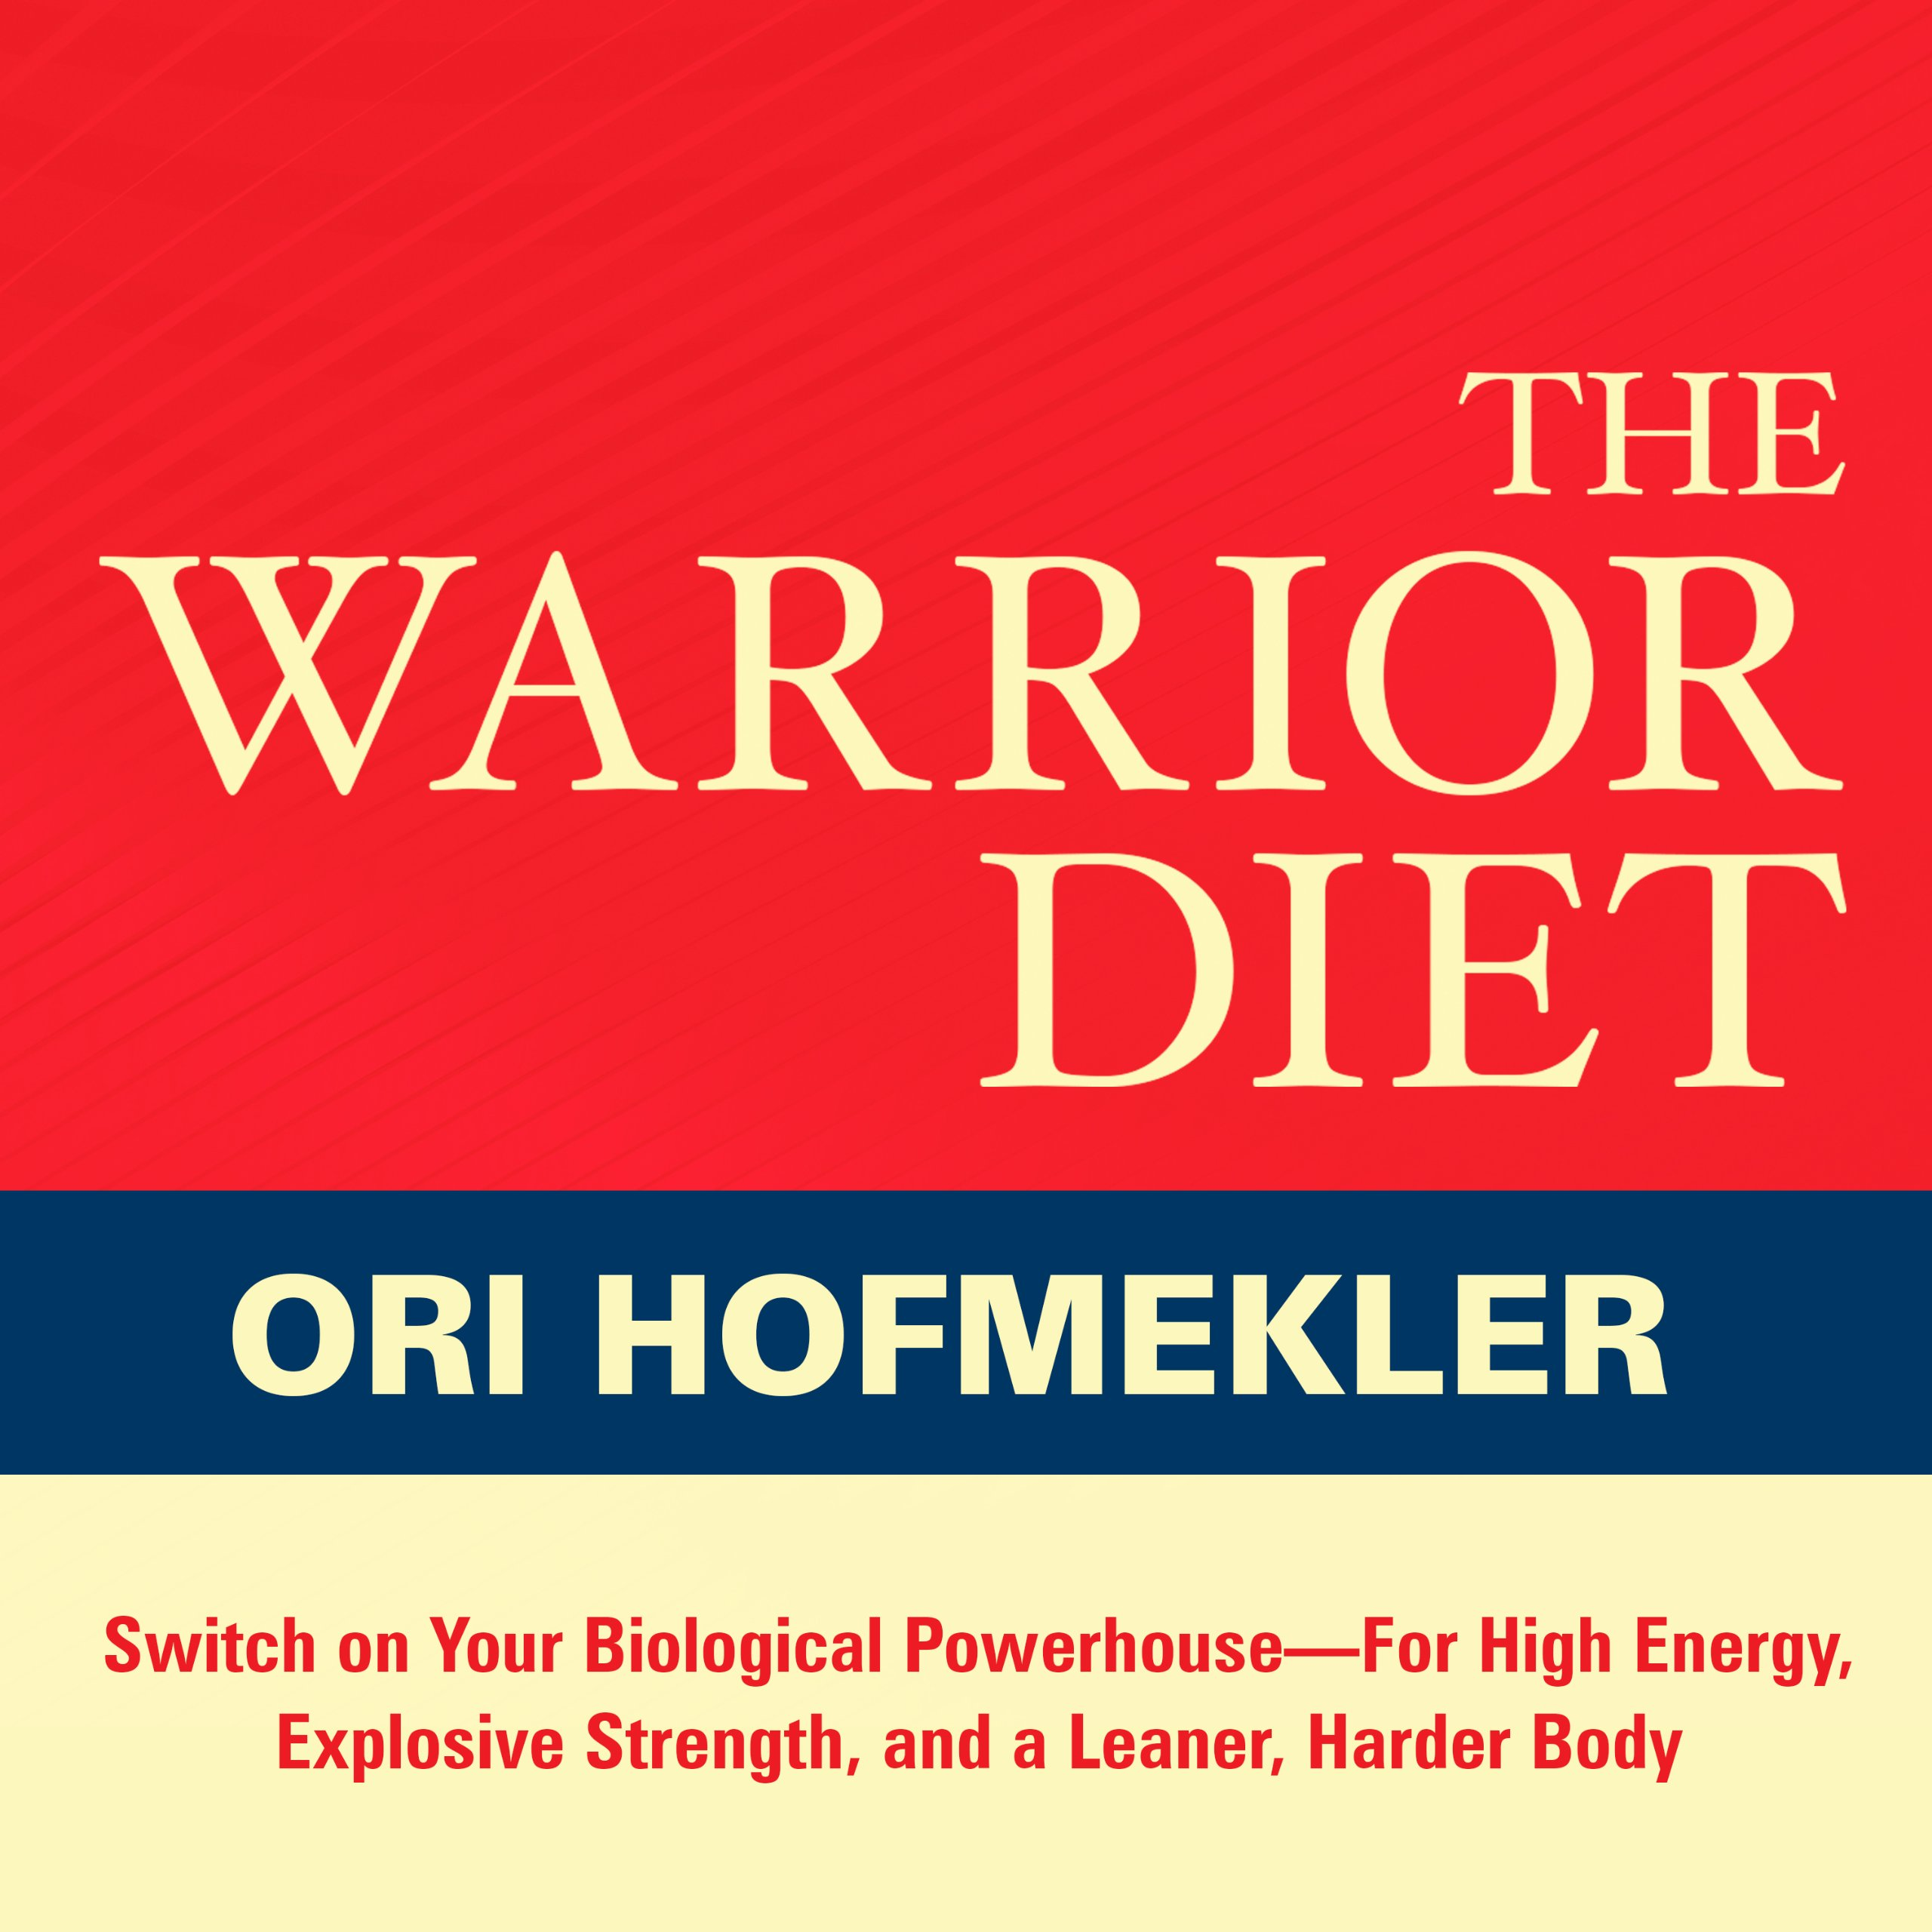 The Warrior Diet  Switch On Your Biological Powerhouse For High Energy Explosive Strength And A Leaner Harder Body